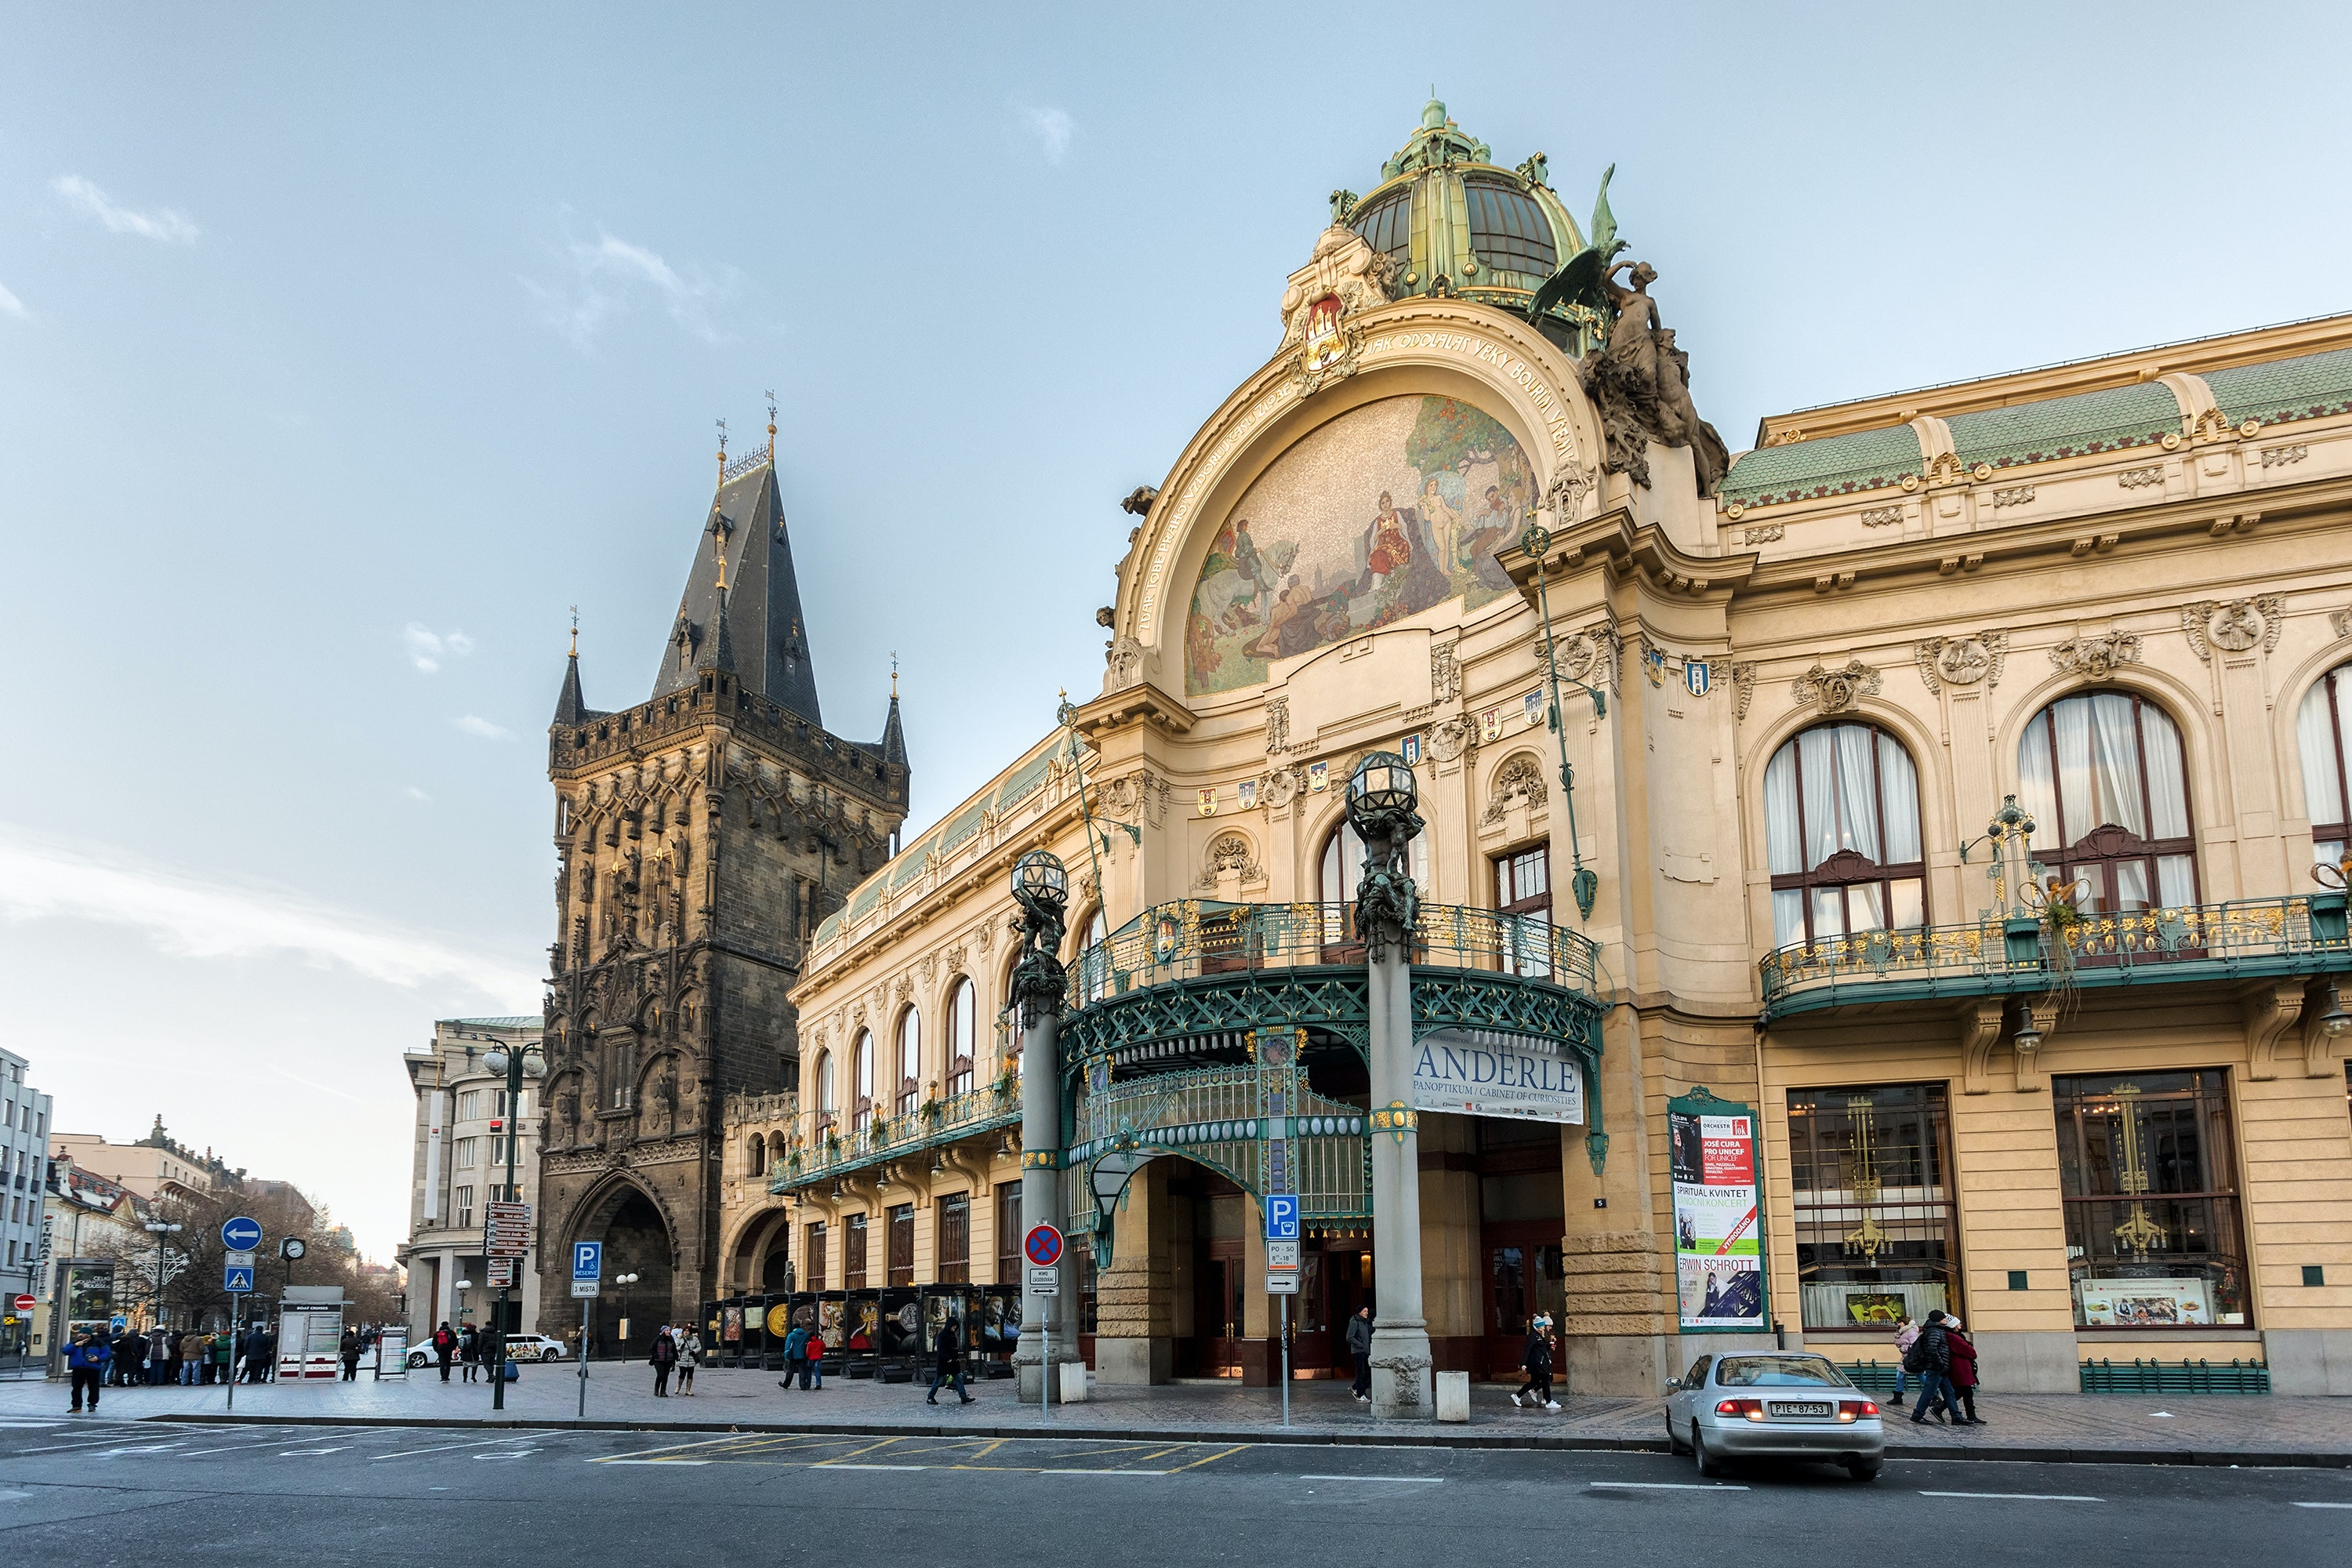 Besides its art nouveau facade, the Municipal House in Prague also houses artwork by Alfons Mucha.